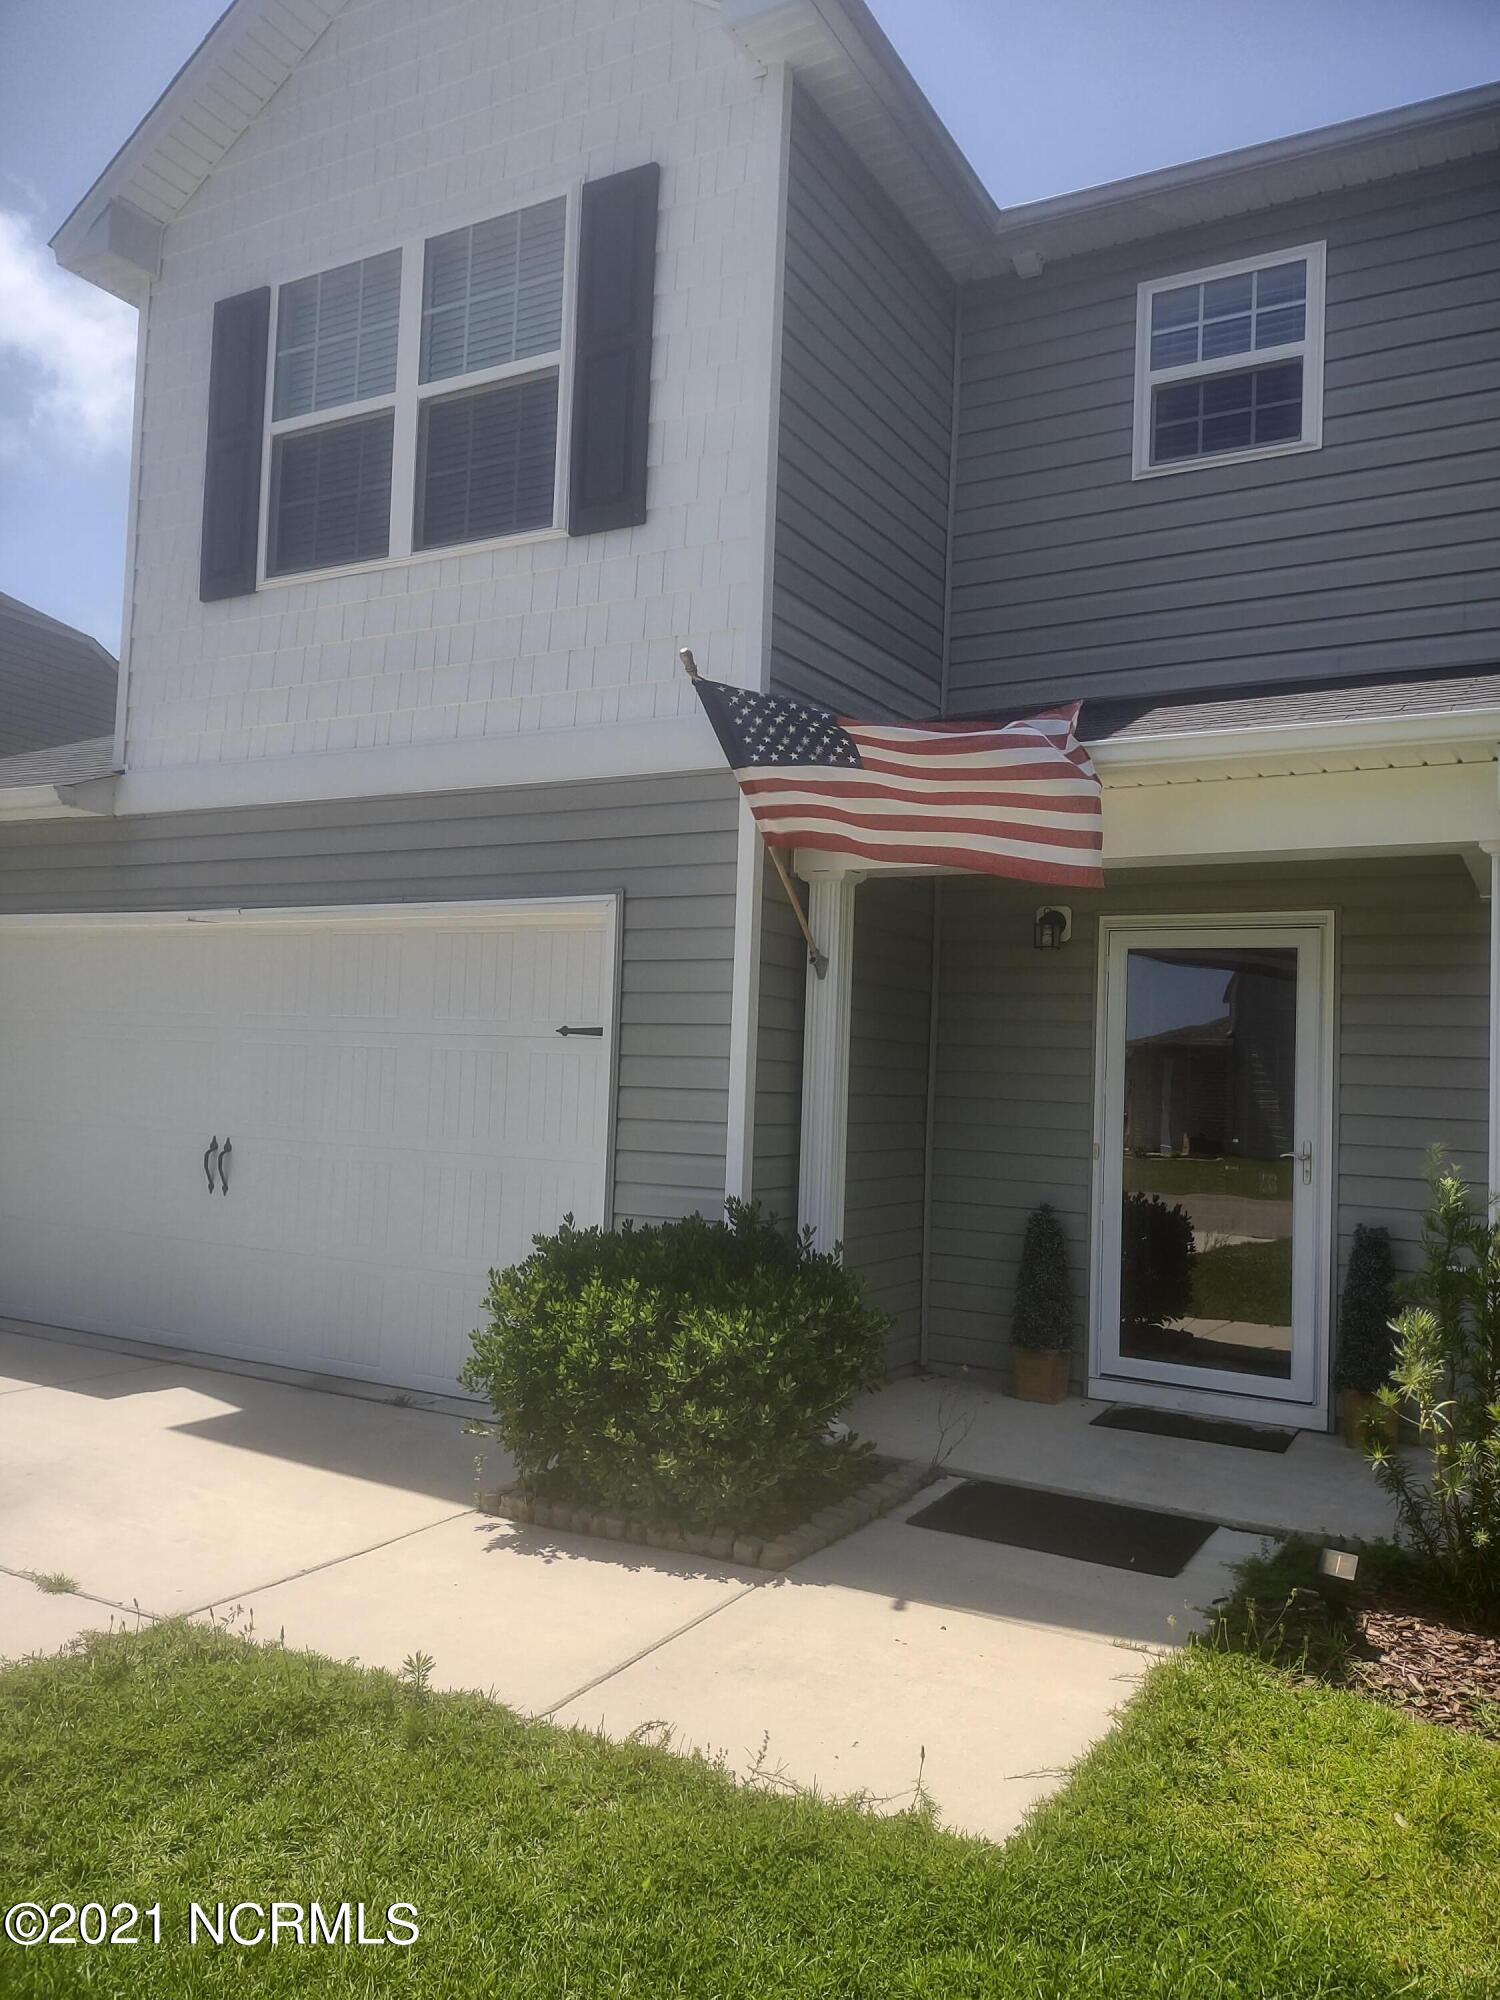 Move in ready home, conveniently located minutes from beautiful Topsail Island, MARSOC, Stone Bay and Camp LeJeune. This spacious home features an open living / kitchen area downstairs, a private office and a half bath. The upstairs features a large master suite with vaulted ceilings, on suite bath with large shower / soaker tub combo and a spacious walk in closest. Also located upstairs are the 2 guest bedrooms, guest bath and an open den/bonus area. This home is located at the end of a quiet street in a nice neighborhood that offers sidewalks and streetlights. This home is ready for you to relax and enjoy life, conveniently located to local shops and dining and the award winning area beaches. Let's get you HOME.